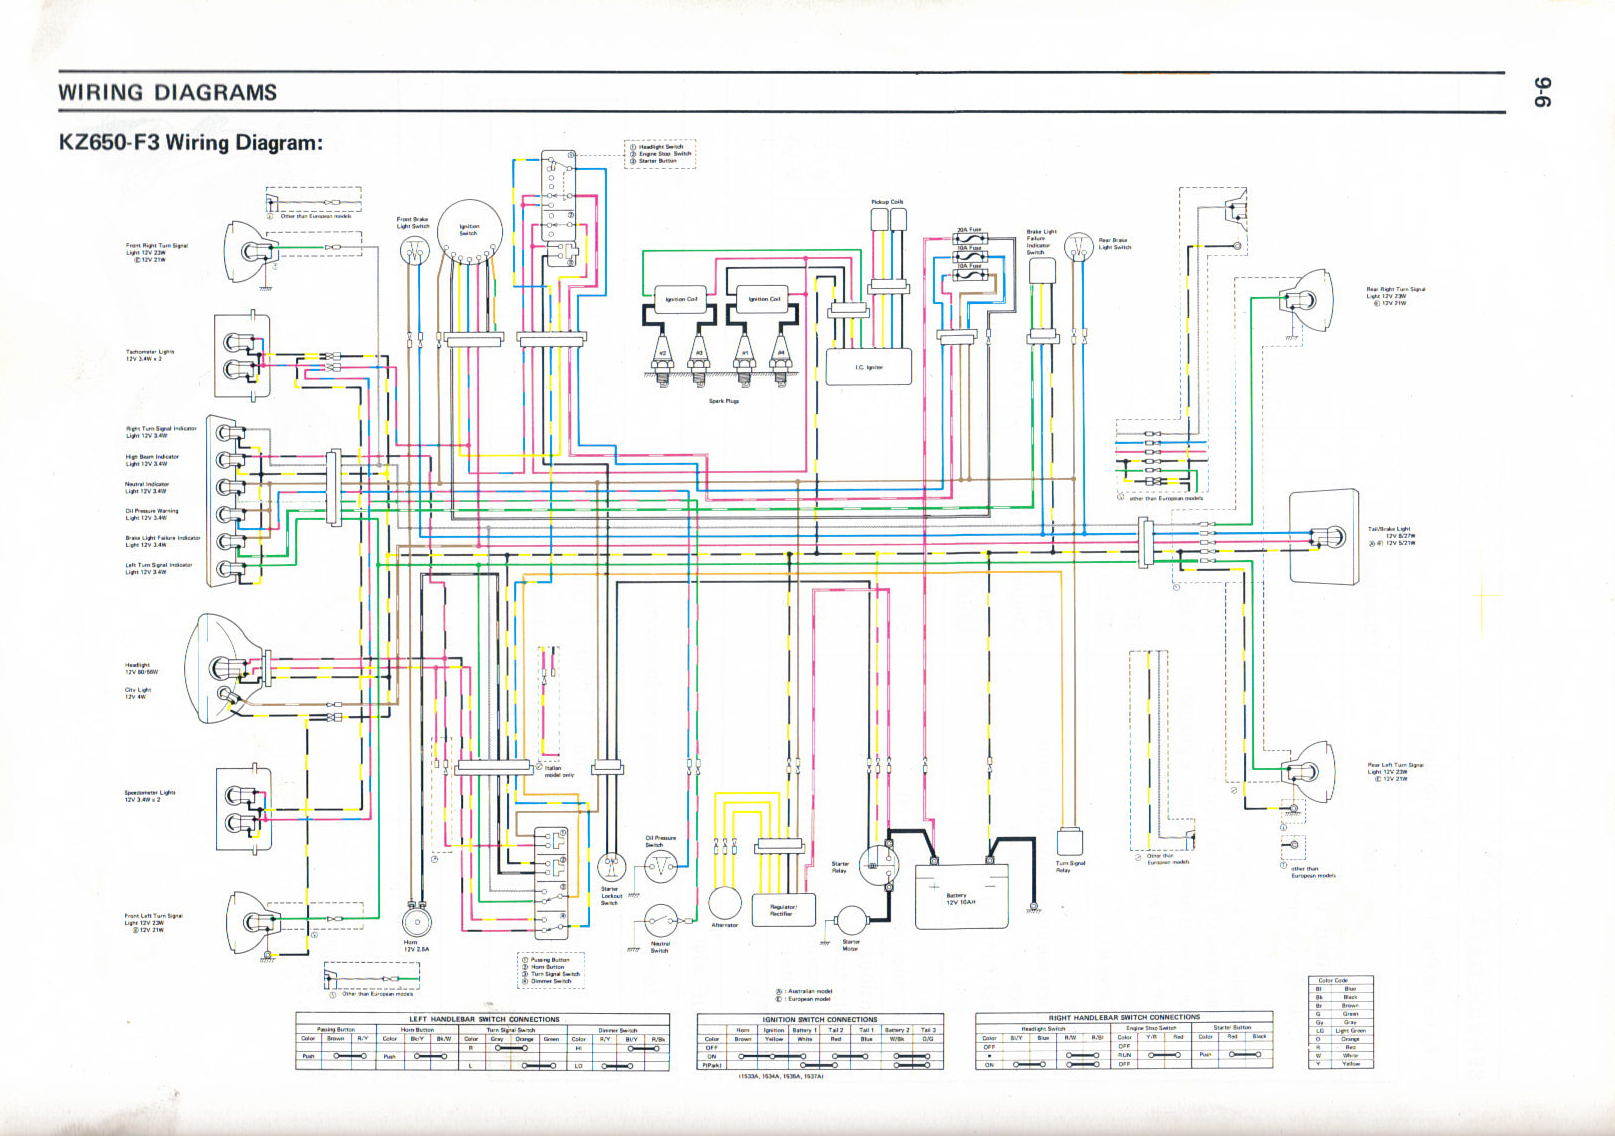 Wiring Diagram Of Honda Tmx 155 Library Toyota Vios Fuse Box Location Kawasaki Contact Point Enthusiast Diagrams U2022